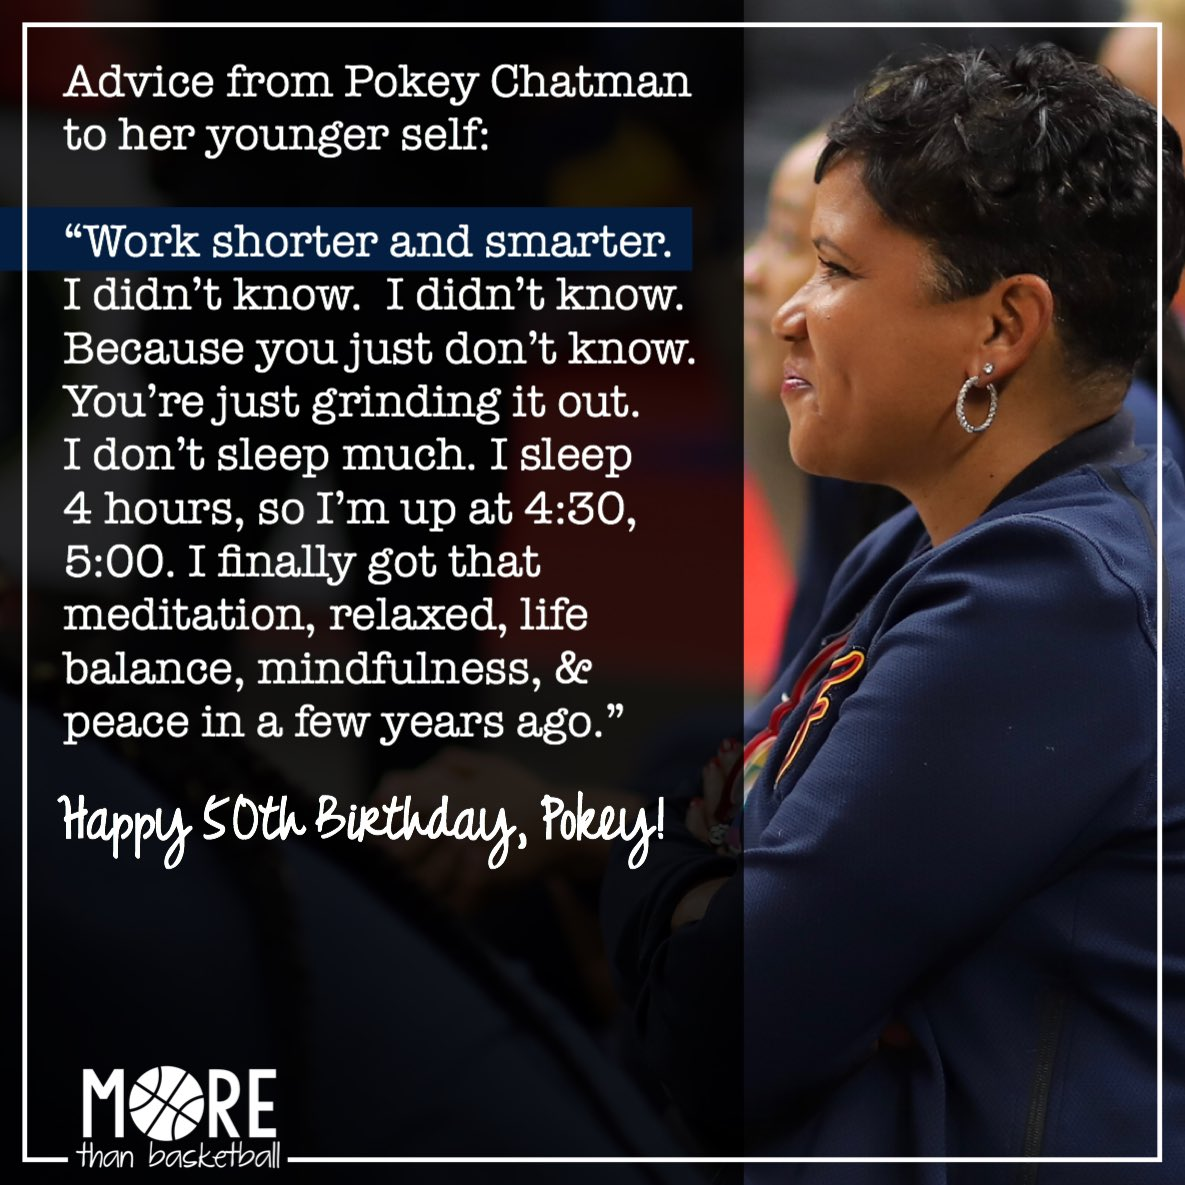 Happy 50th birthday to @indianafever coach @pokeychatman! She shared some wisdom with us a few weeks ago that she has picked up in her 50 years of life and learning. Work shorter and smarter. And find that life balance. Thank you, Pokey! . #wnba #indianafever #fever20